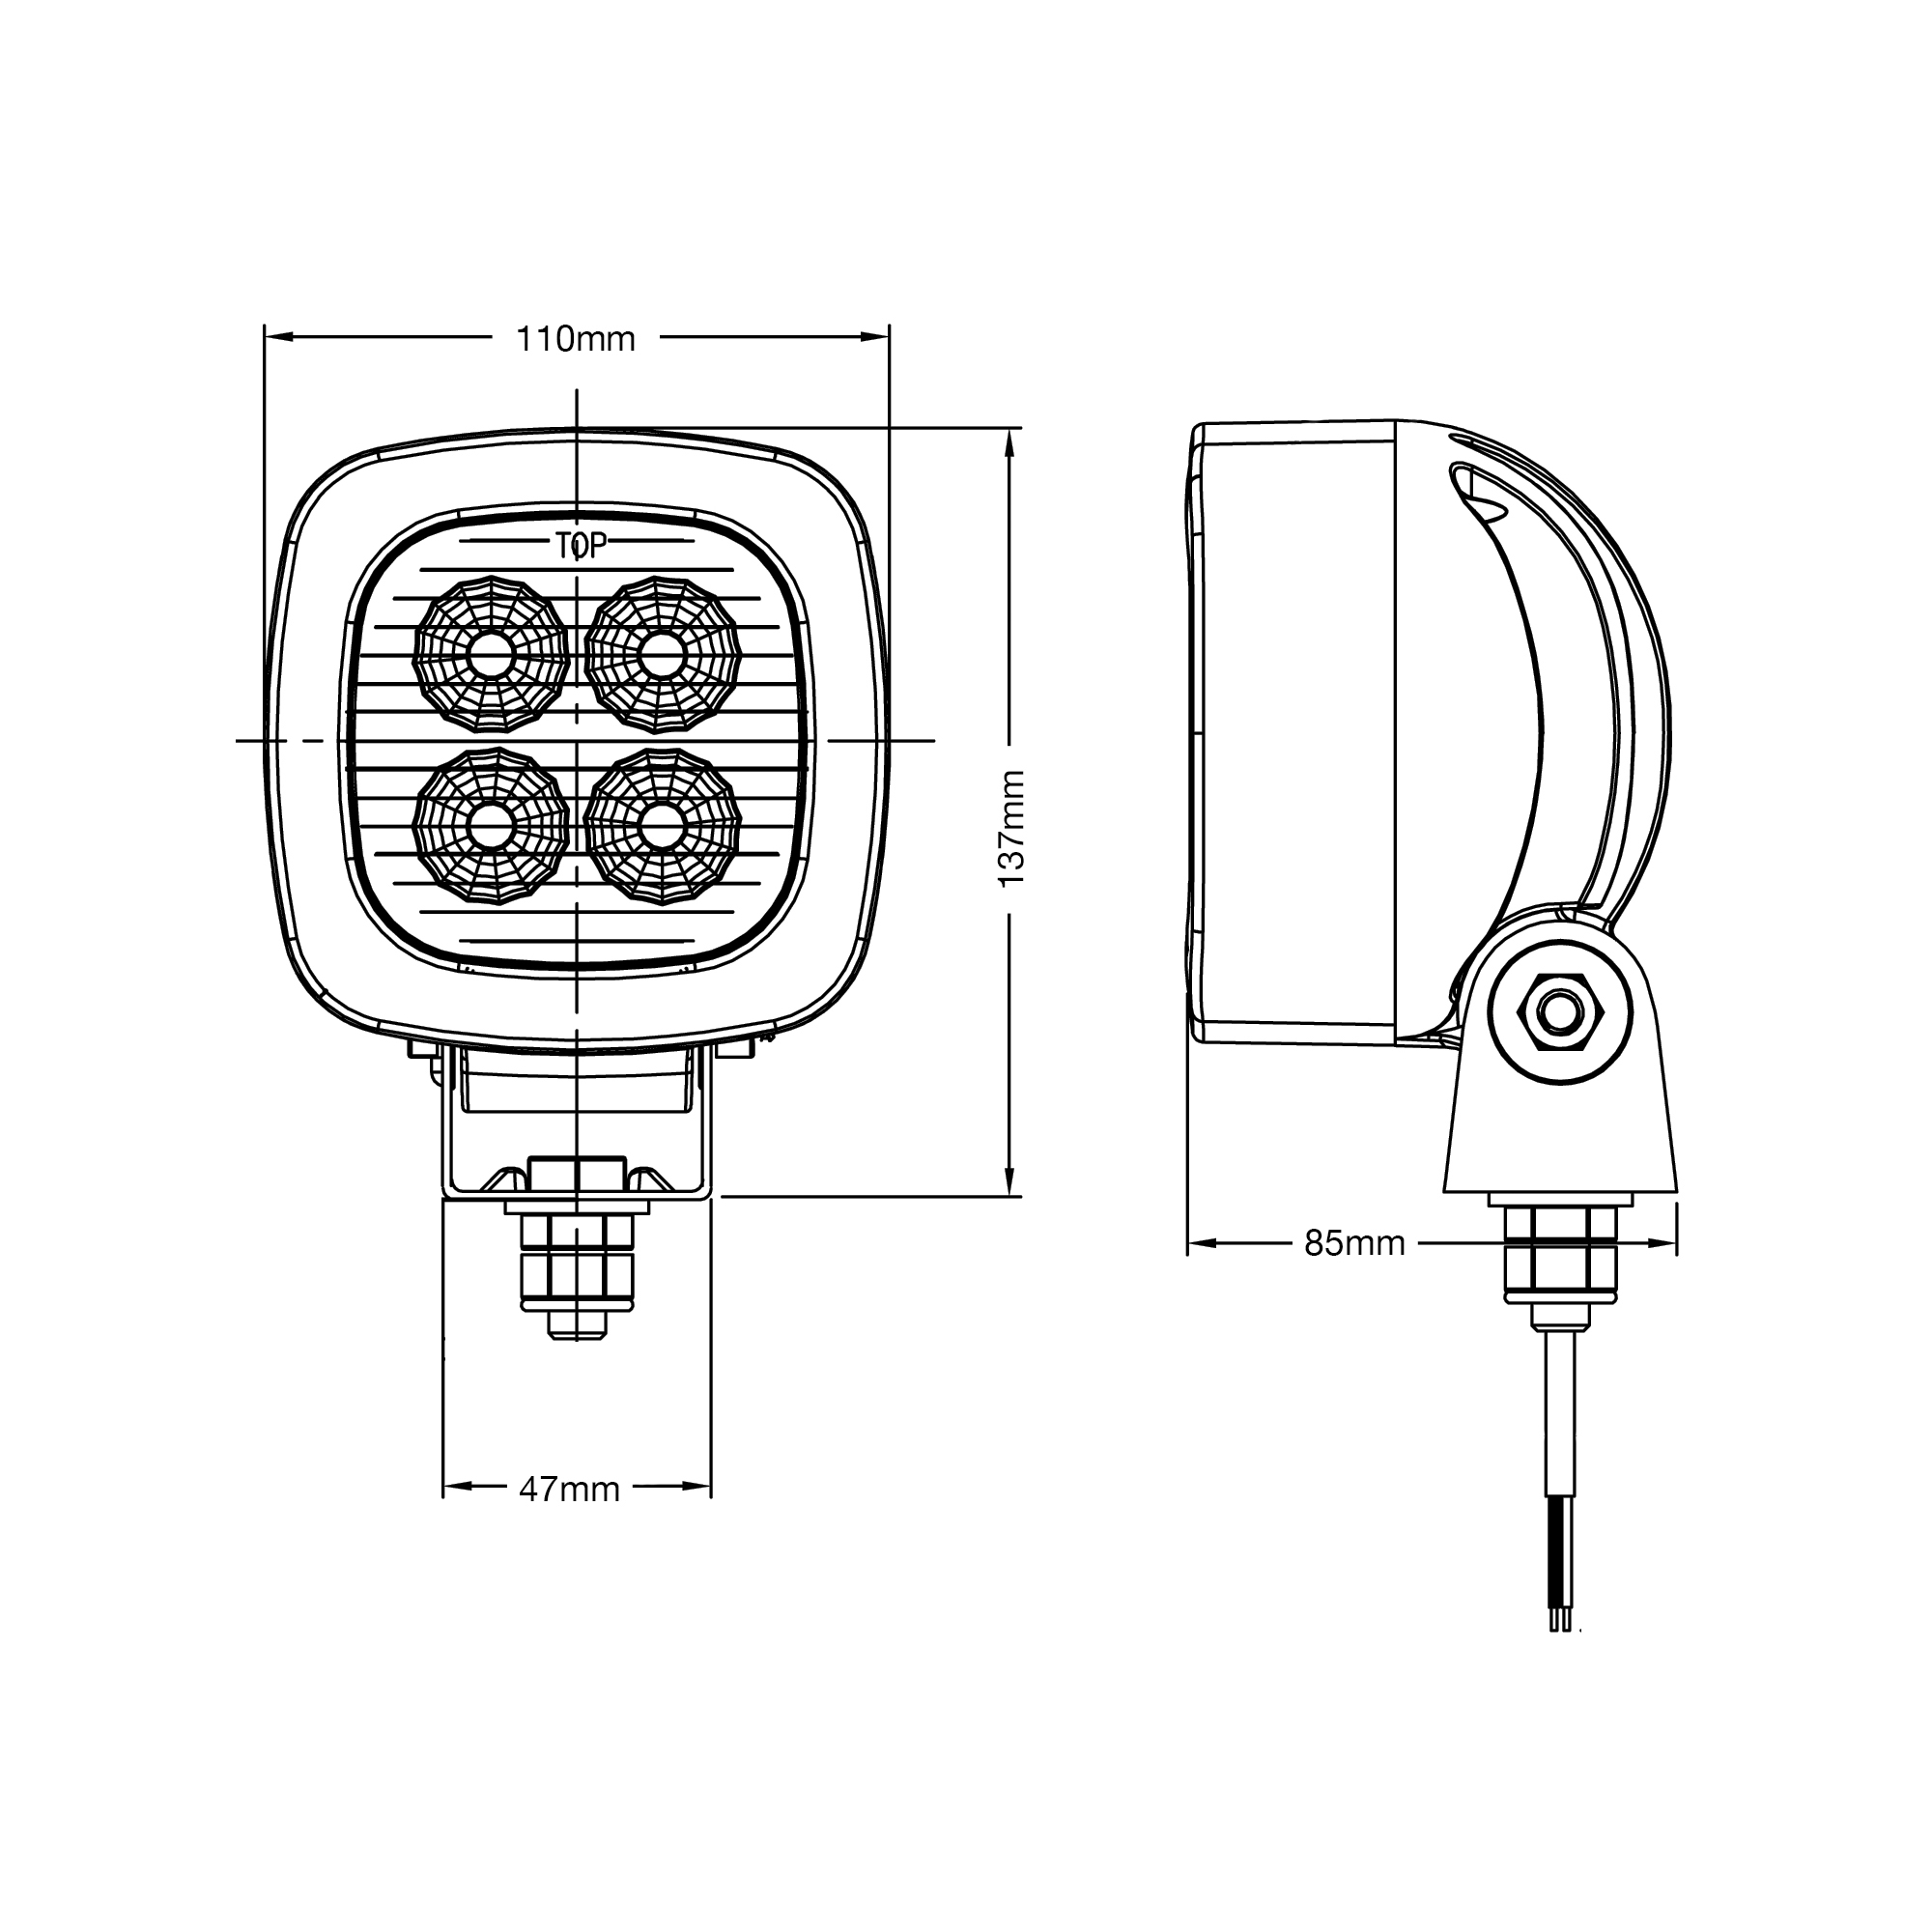 RCV9591 TruckMaster LED Work Light tech diagram